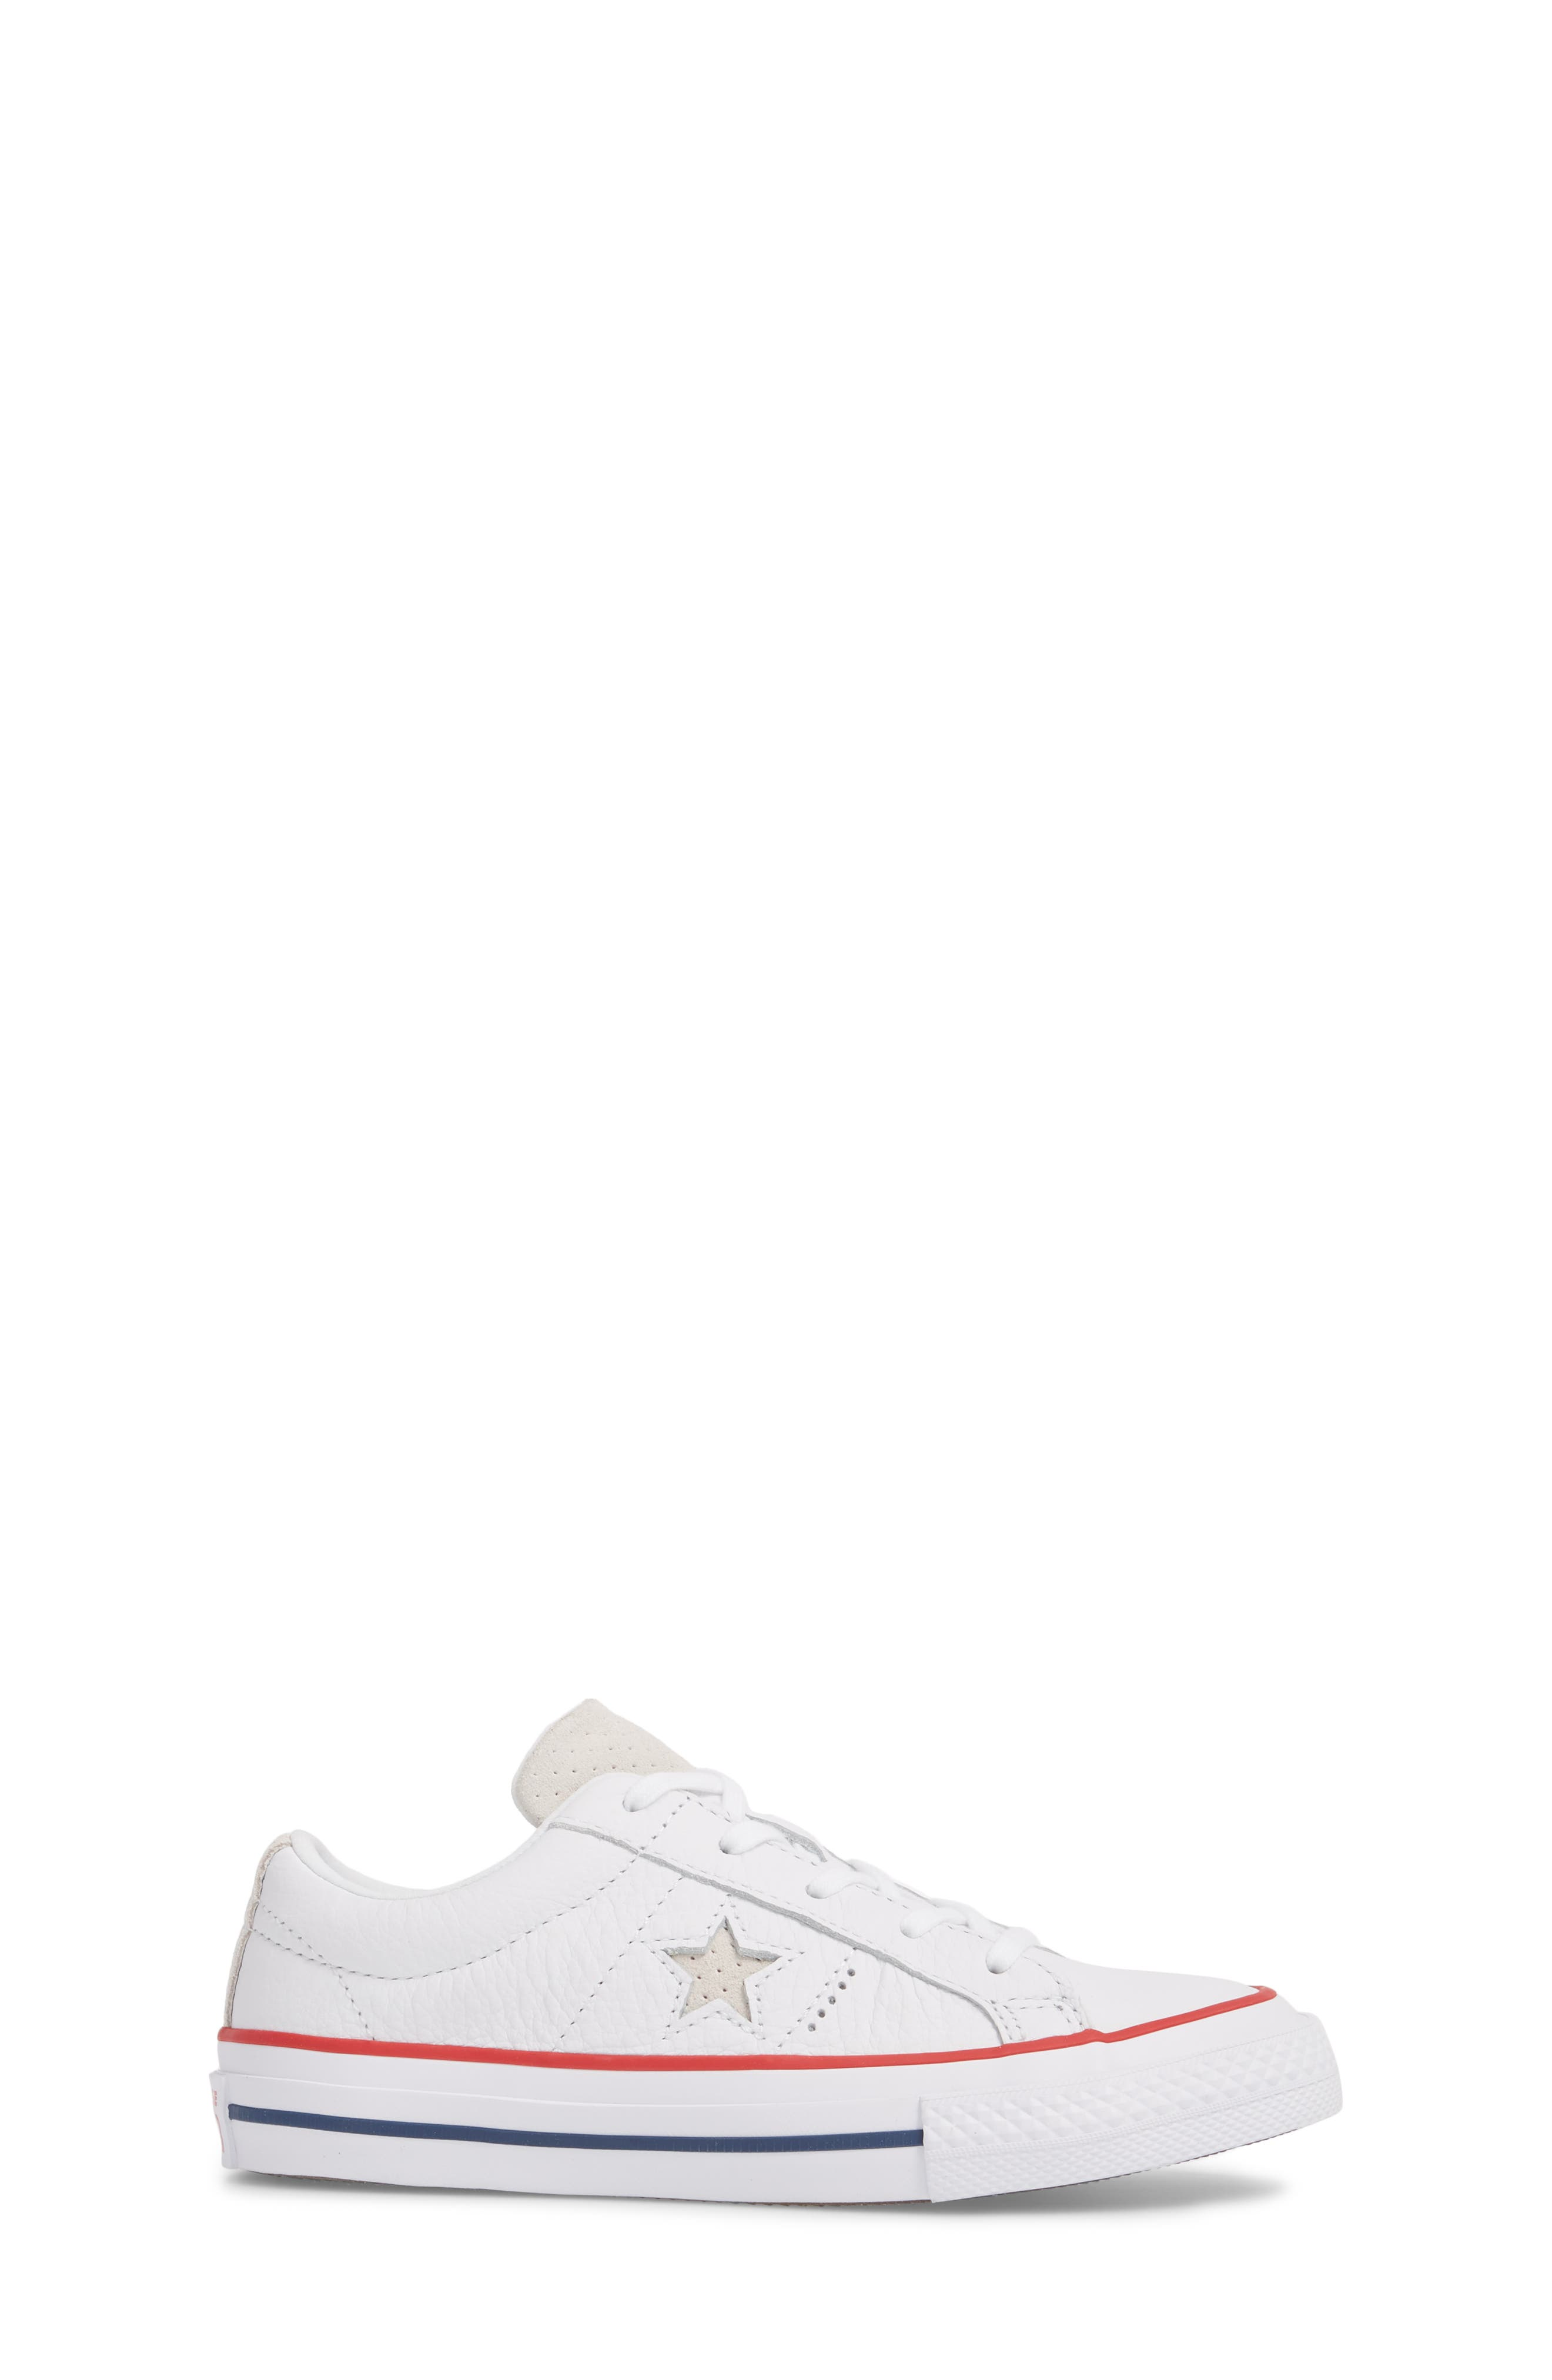 Chuck Taylor<sup>®</sup> All Star<sup>®</sup> New Heritage Oxford Sneaker,                             Alternate thumbnail 3, color,                             White